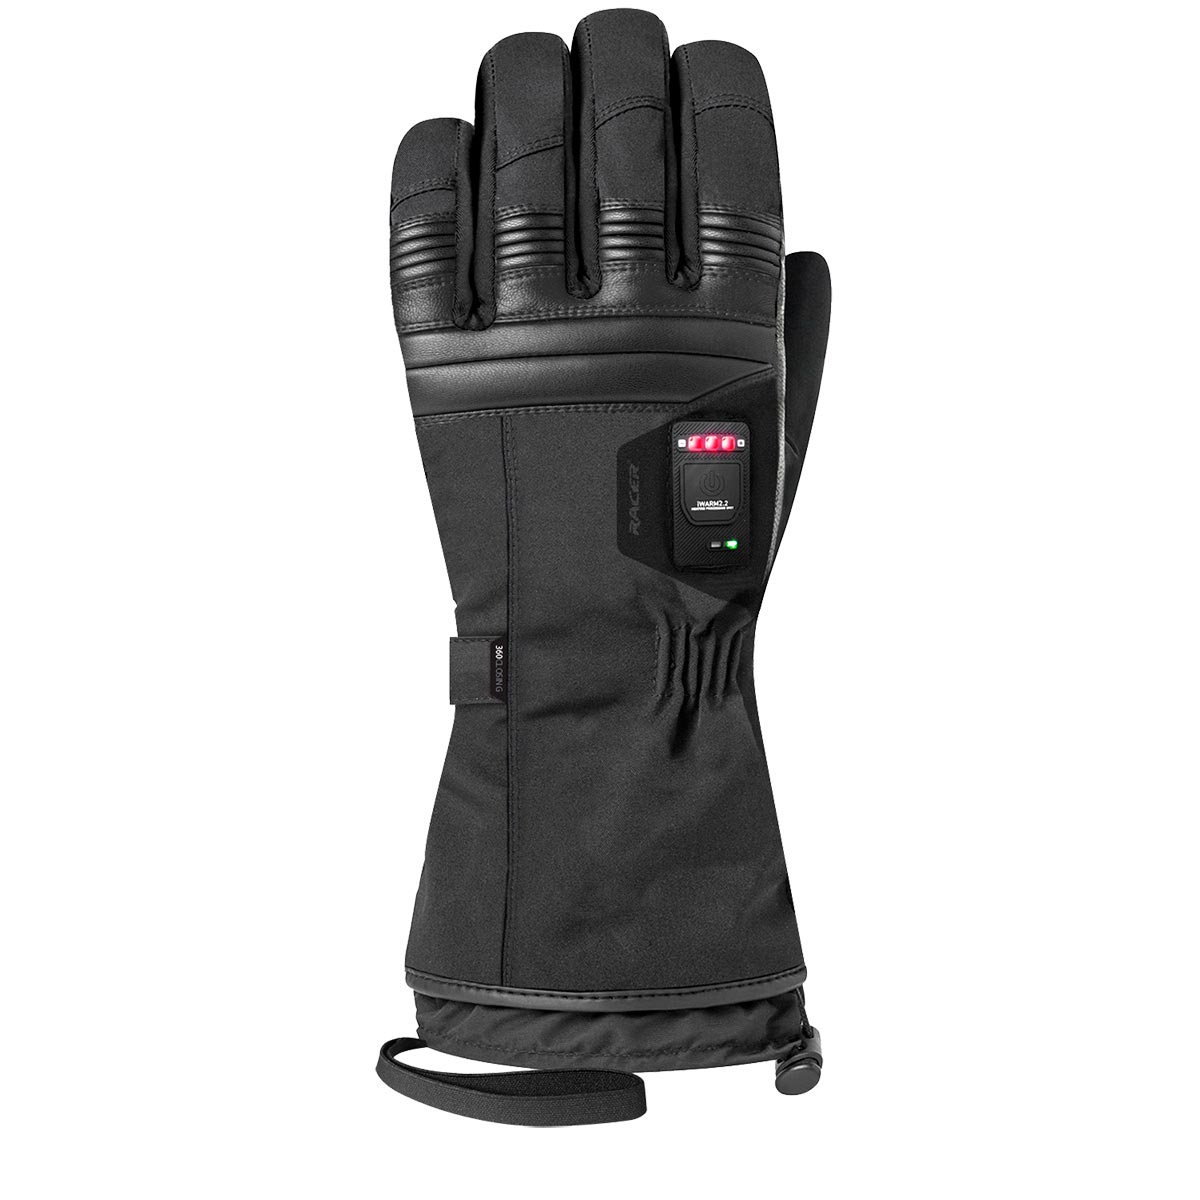 Racer Connectic 4 Heated Gloves